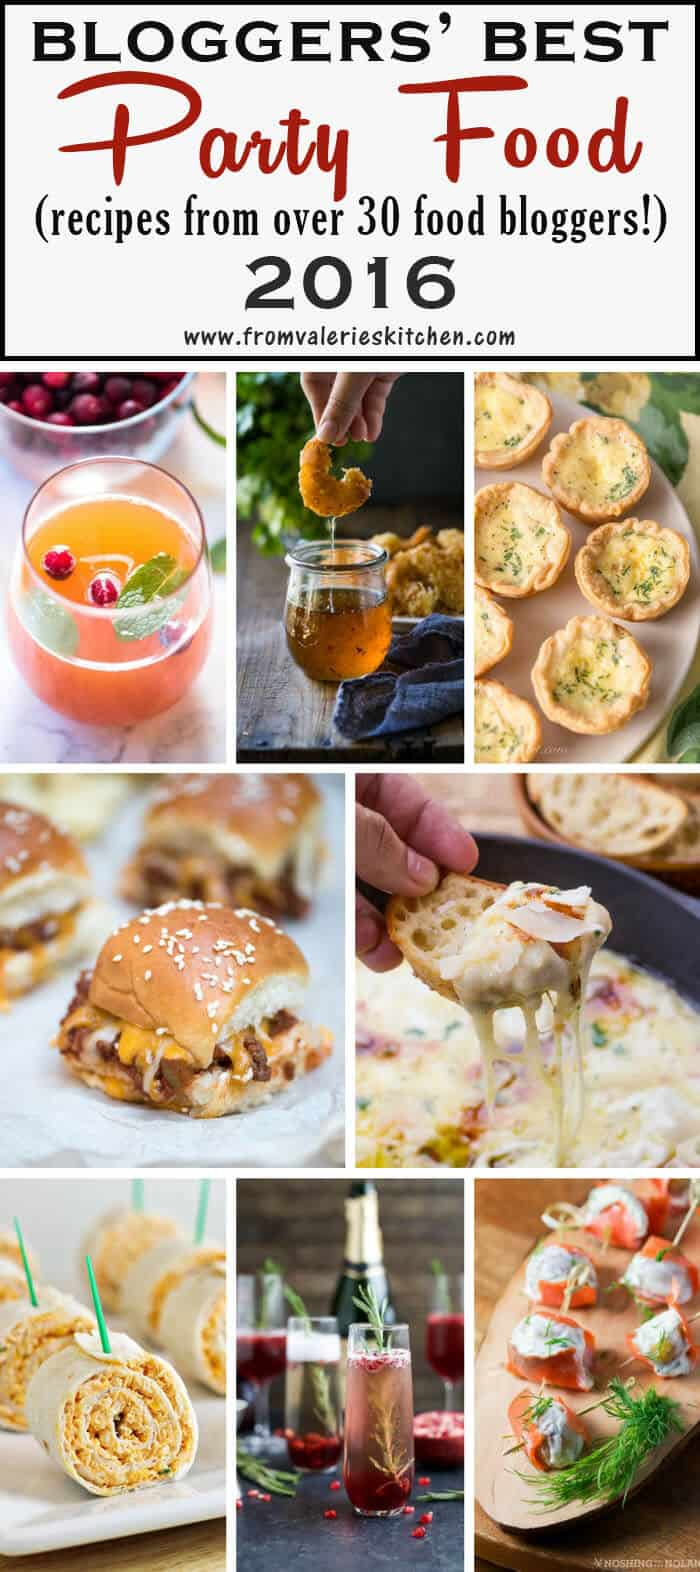 You are guaranteed to find something tasty to eat and drink at your next party in this collection of Bloggers' Best Party Food 2016. The best of the best from over 30 food bloggers!